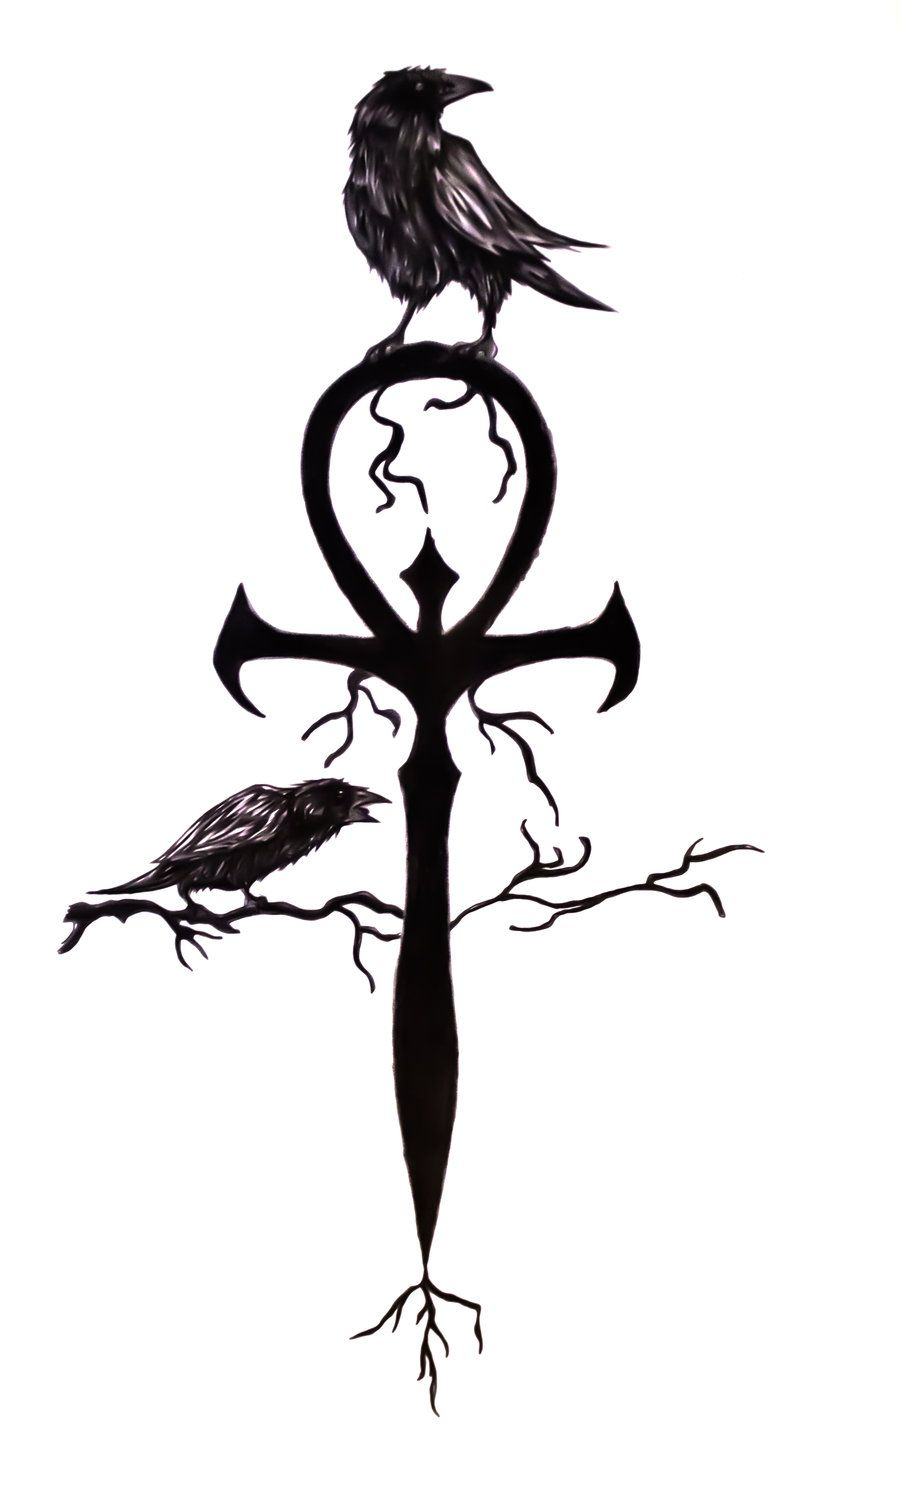 Ankh friend of mine asked me to add the crows on the basic ankh friend of mine asked me to add the crows on the biocorpaavc